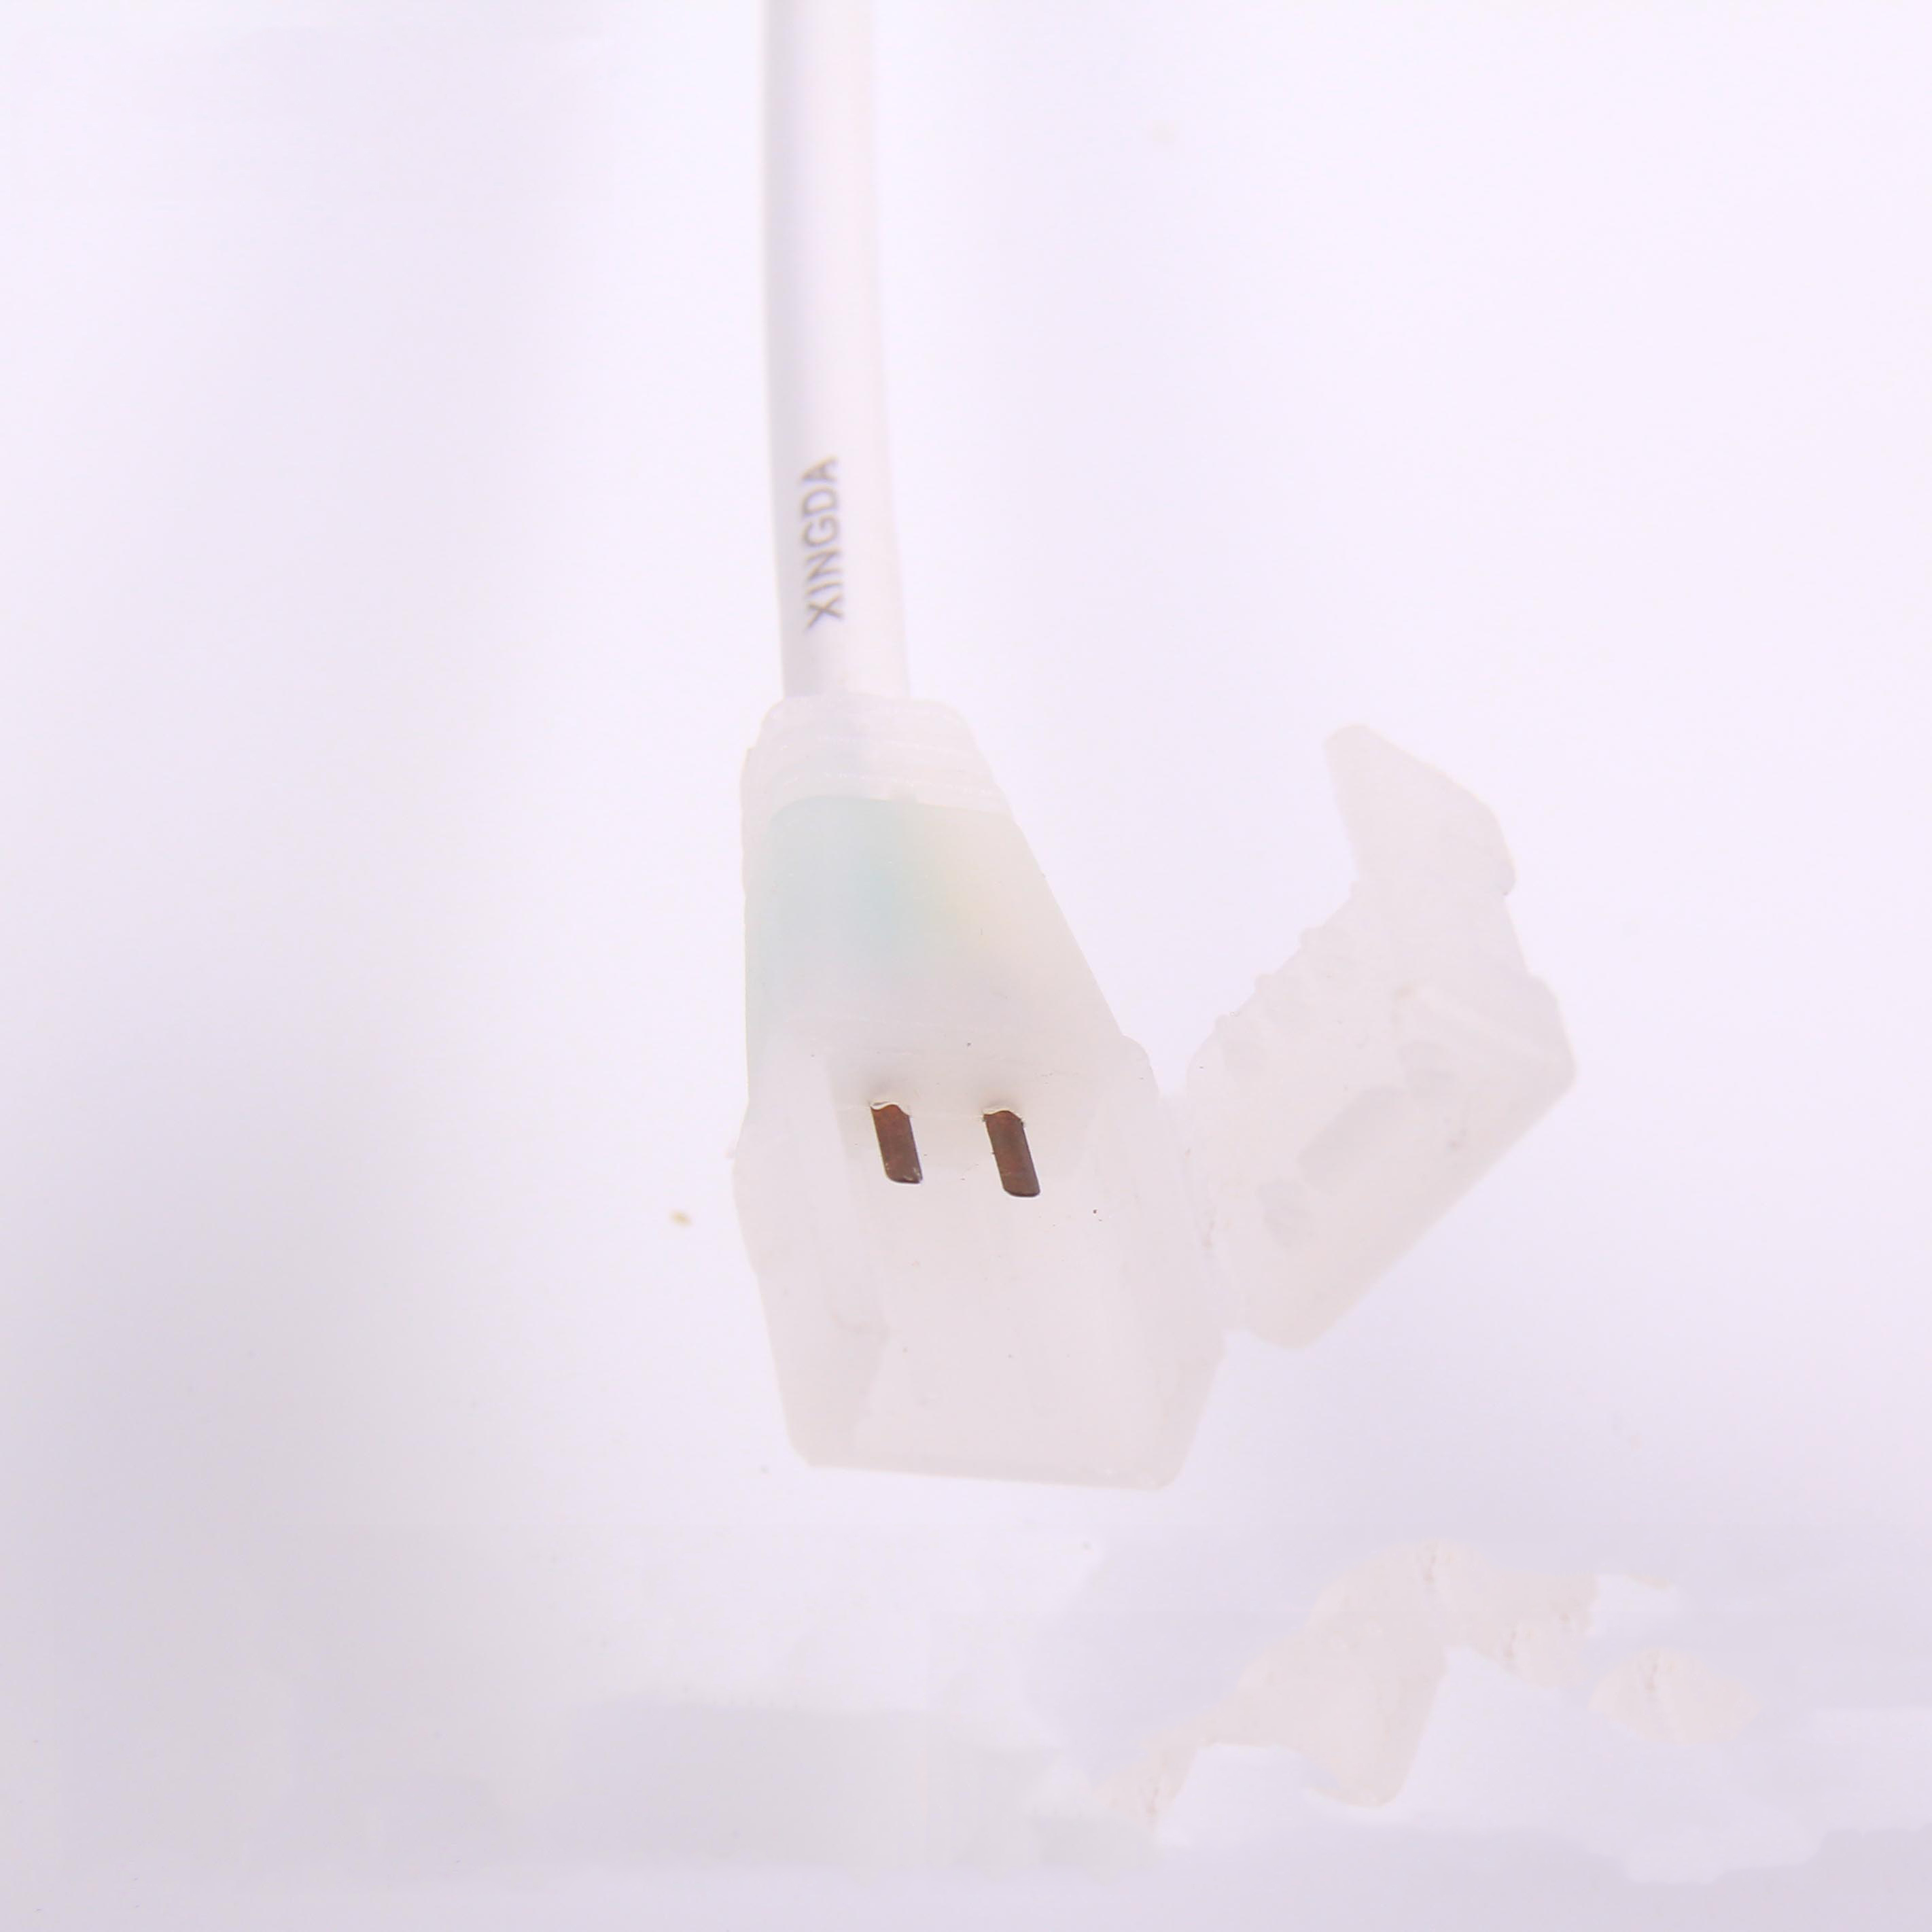 LED Power Plug For Non-Conductors LED Flexible Rope Light